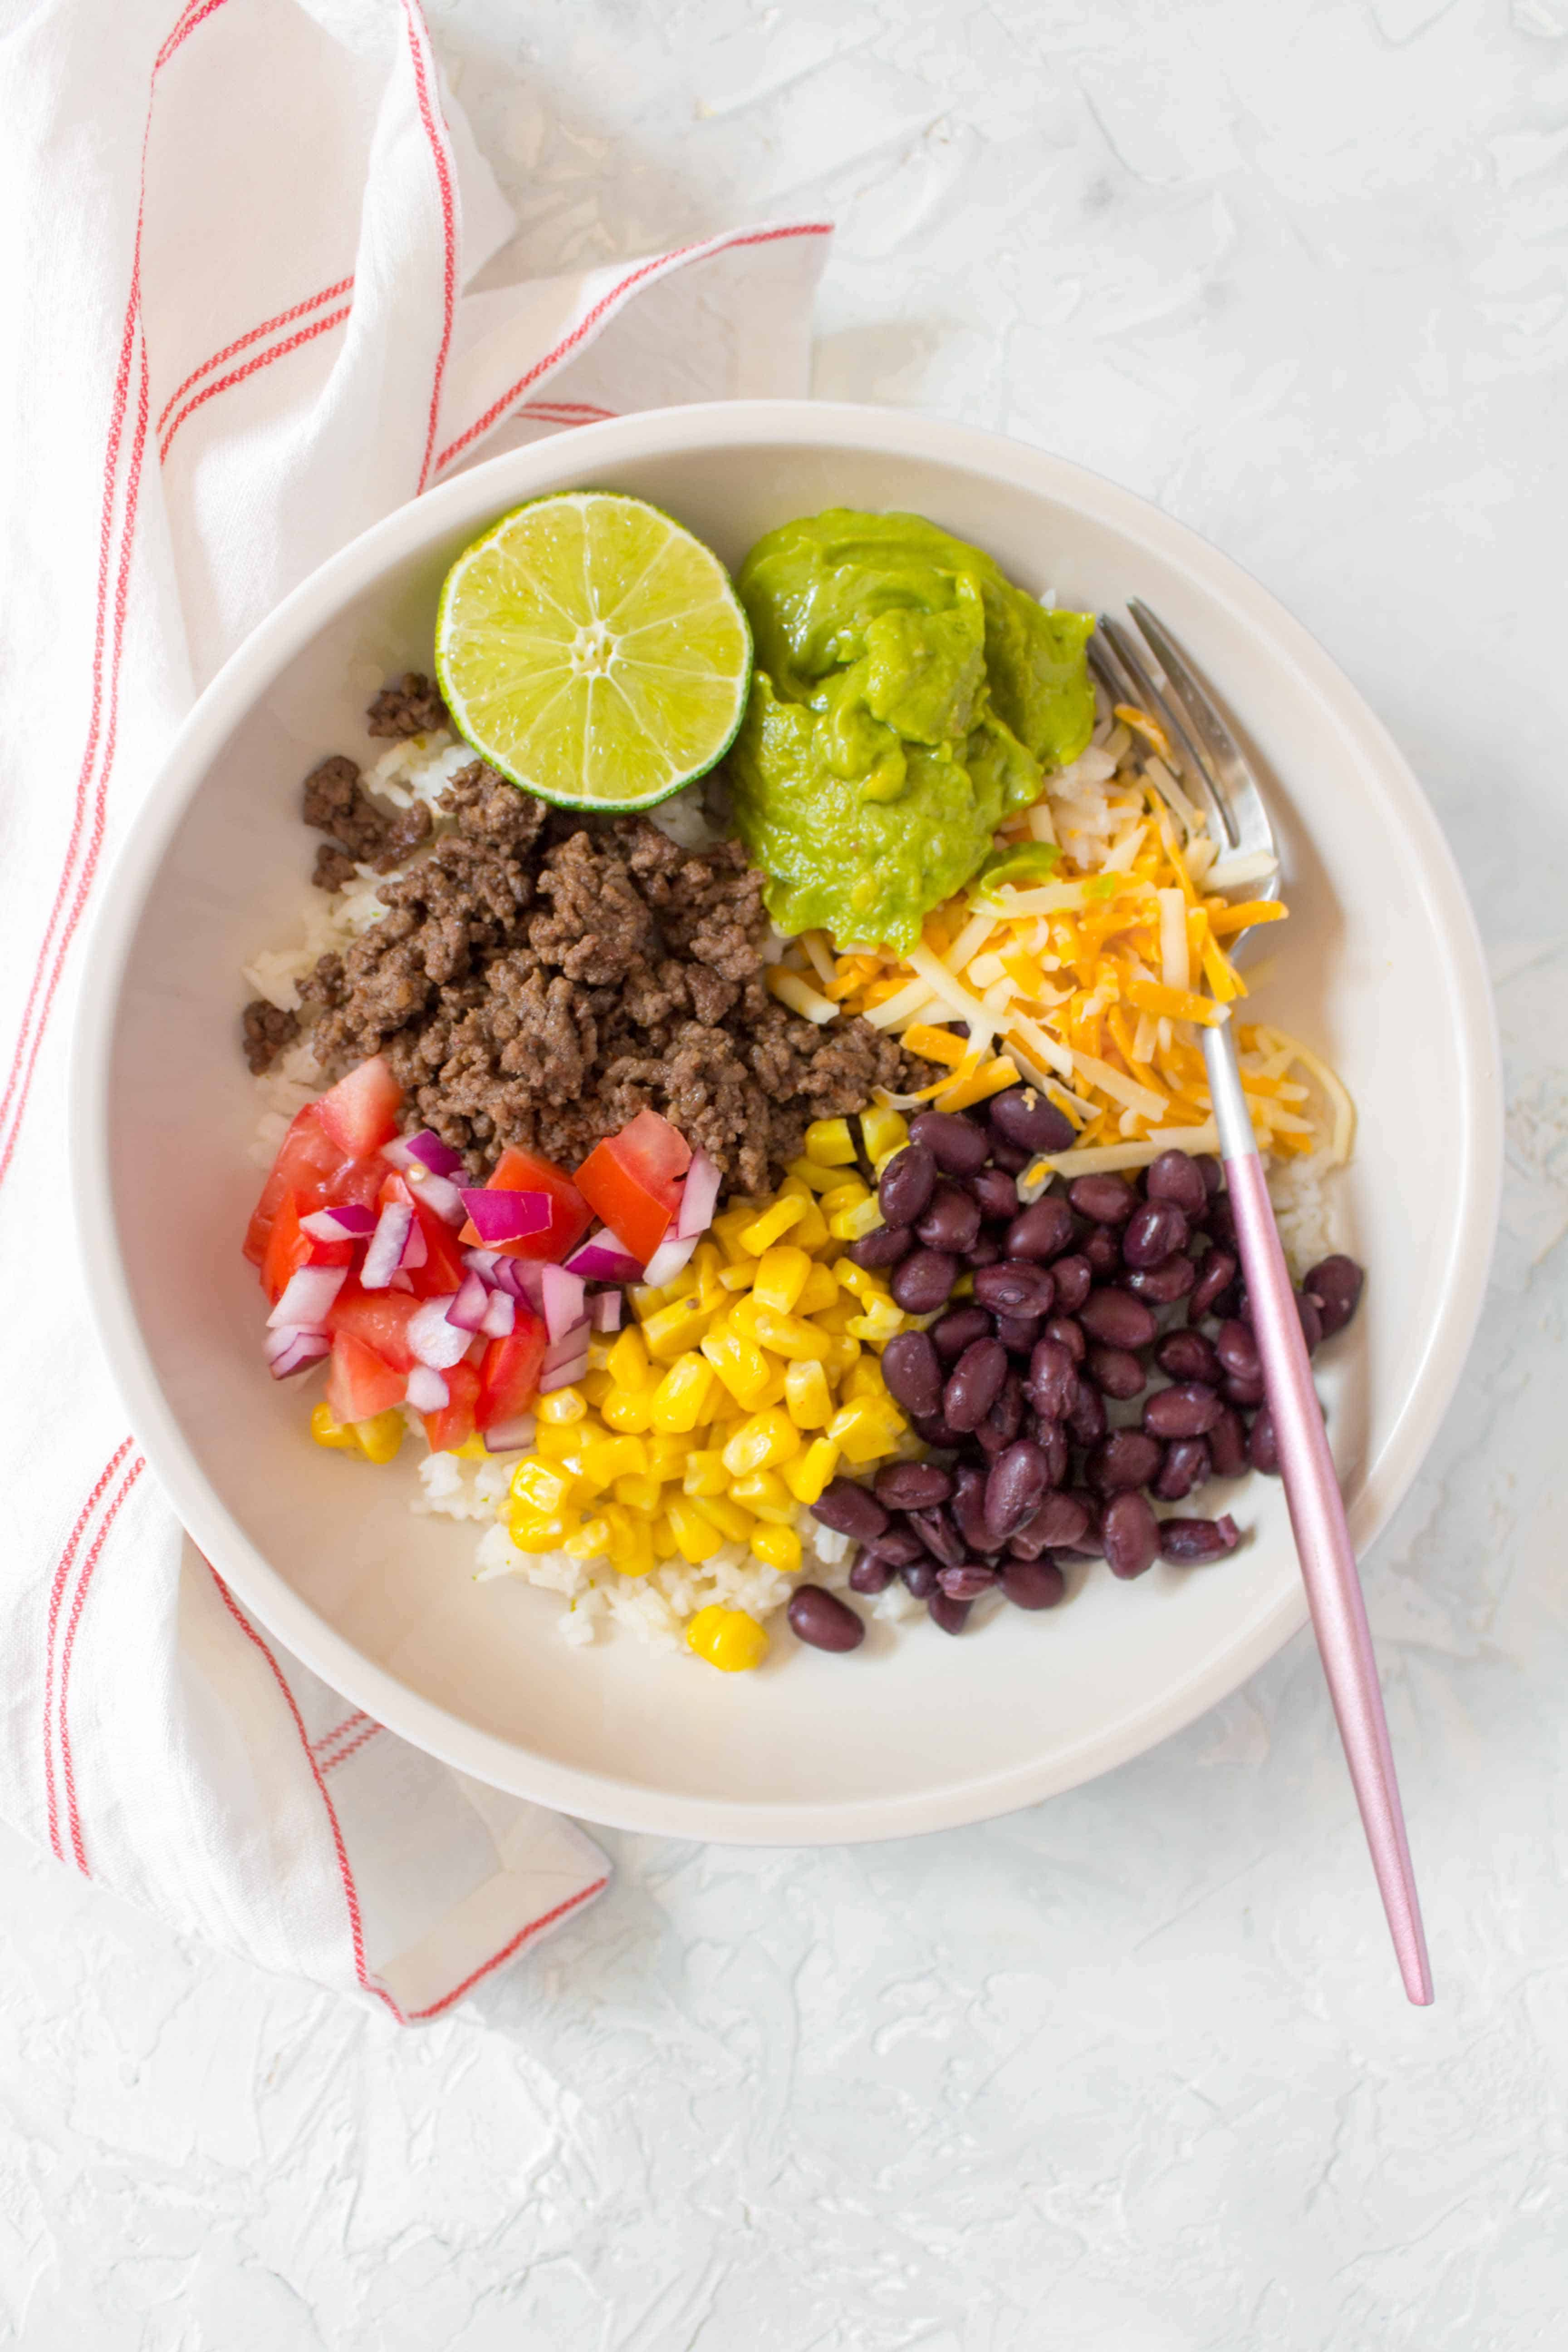 This easy and healthy Taco Bowl Meal Prep is going to become a staple in your meal prep rotation! Simple, filling, and delicious!